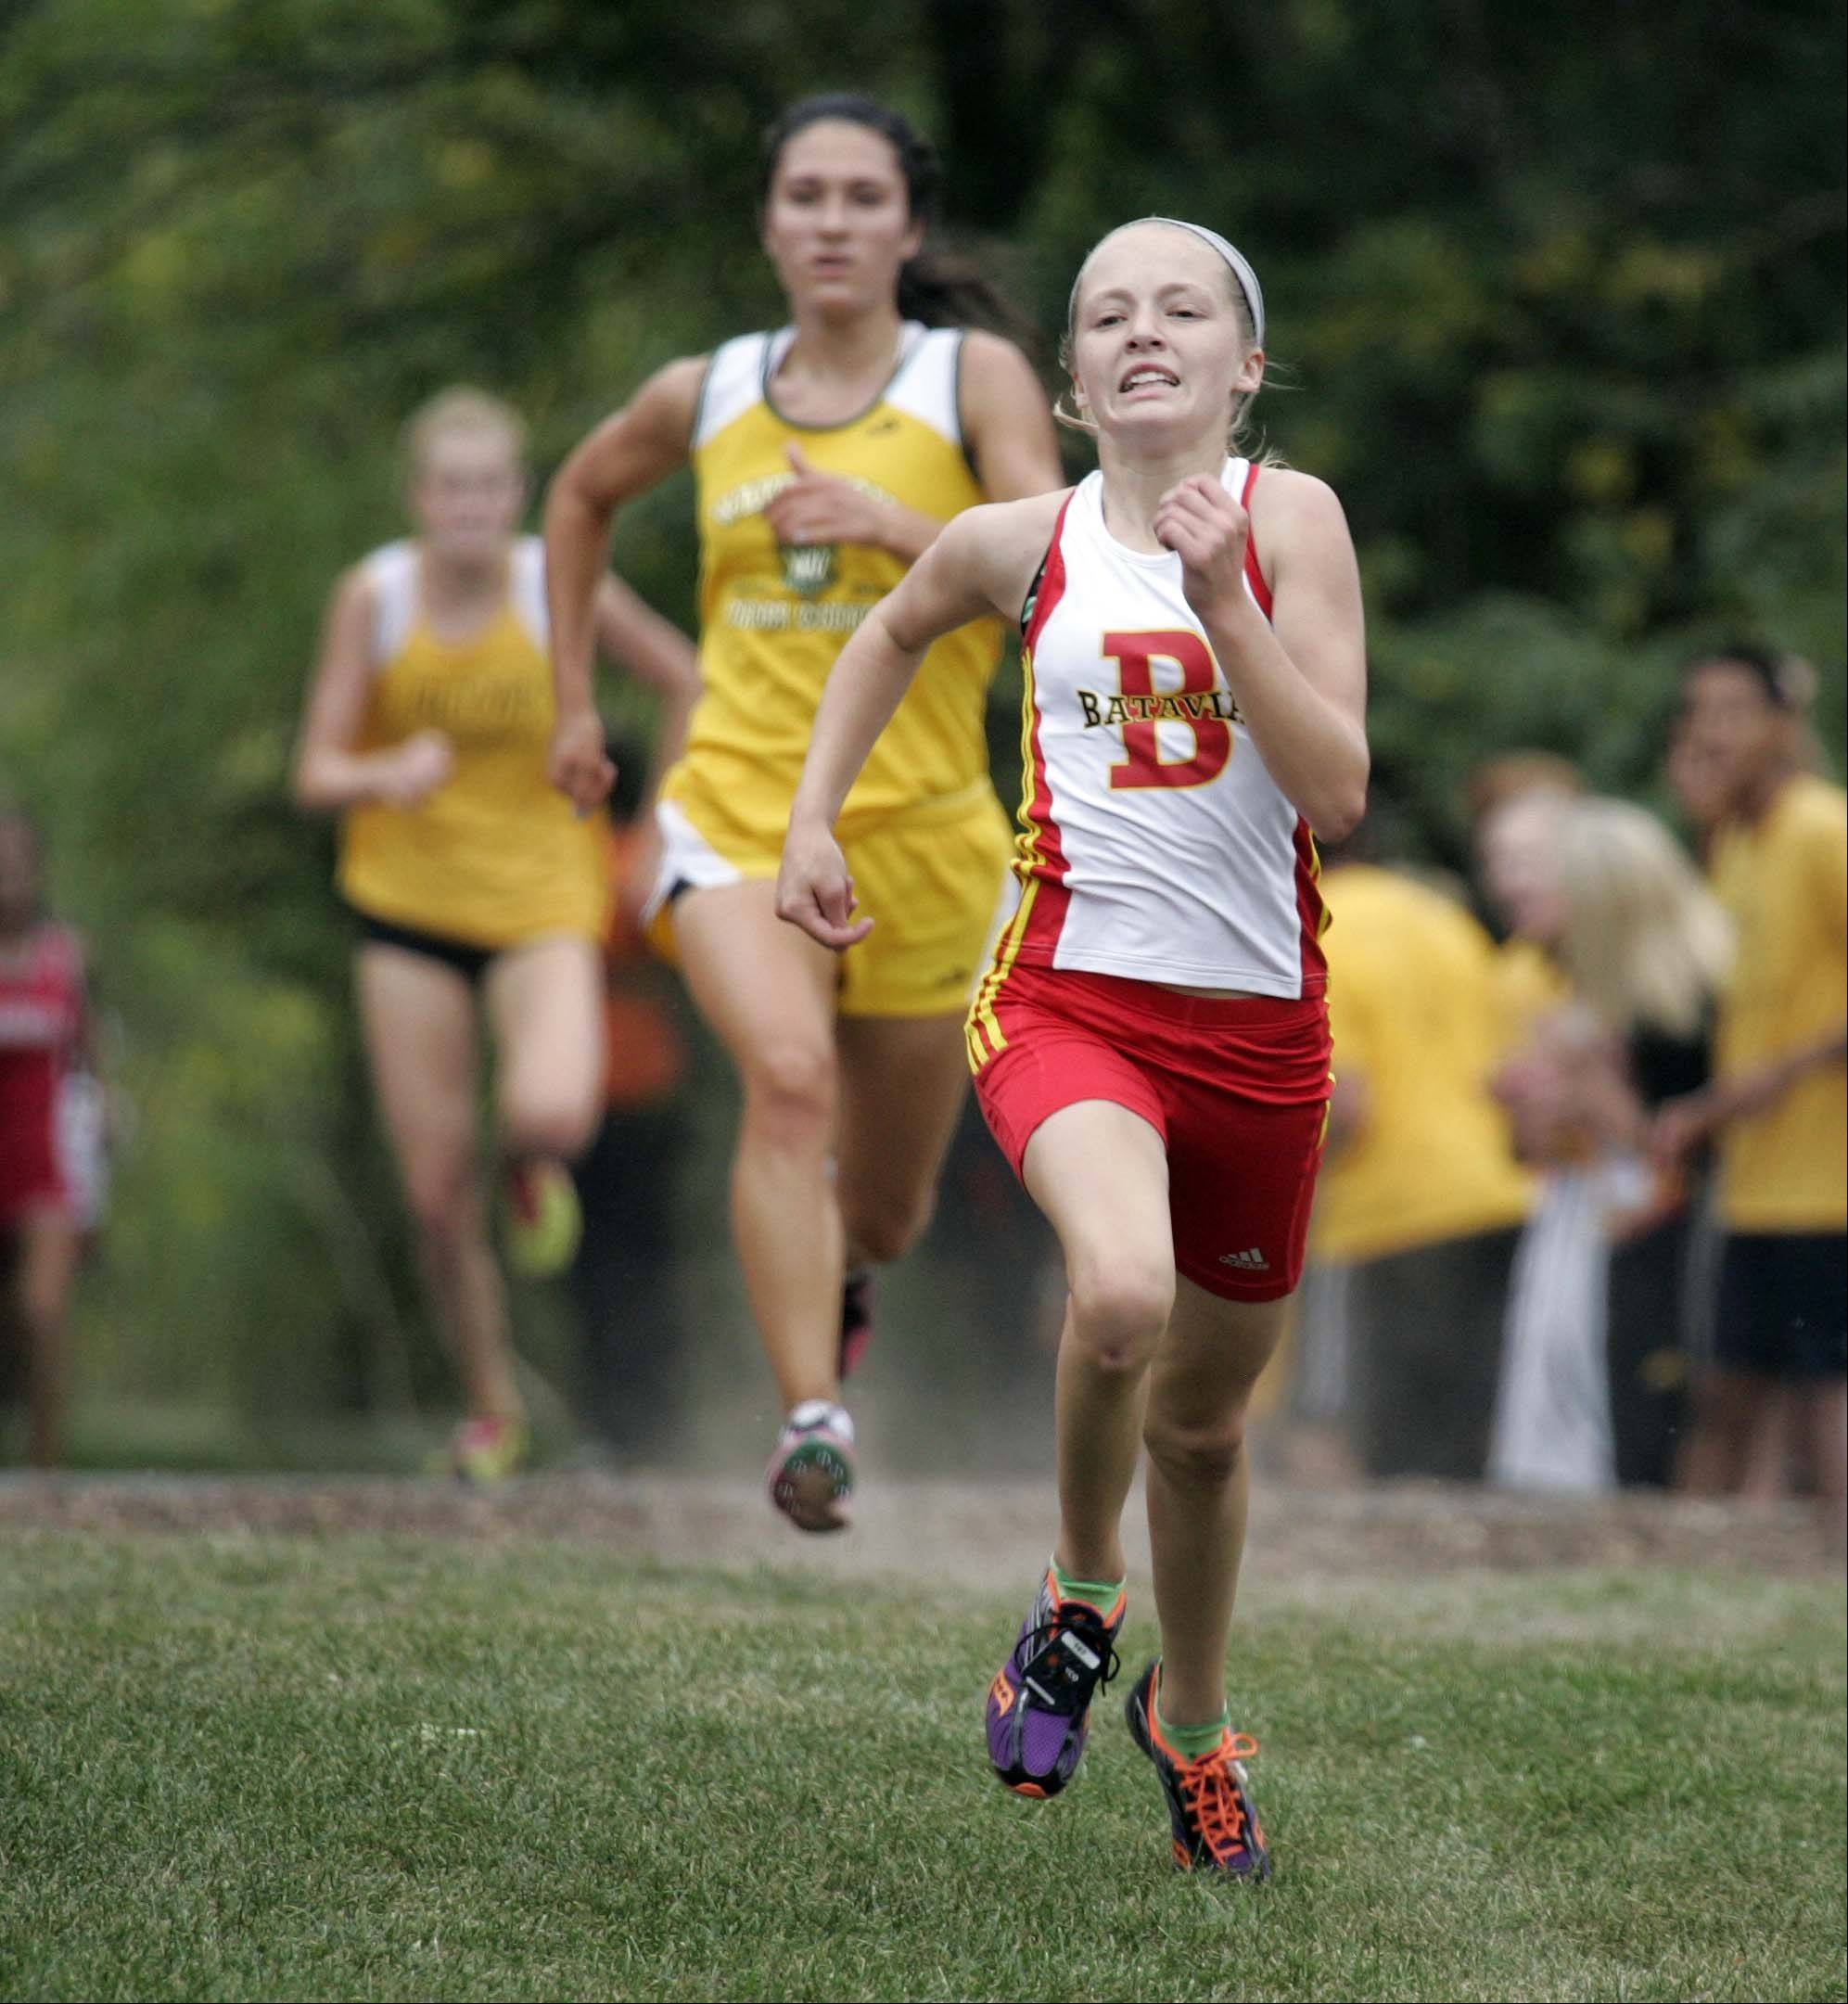 Batavia's Dakota Roman races to sixth place during the girls varsity race at the St. Charles East cross country meet at LeRoy Oakes in St. Charles Saturday September 1, 2012.